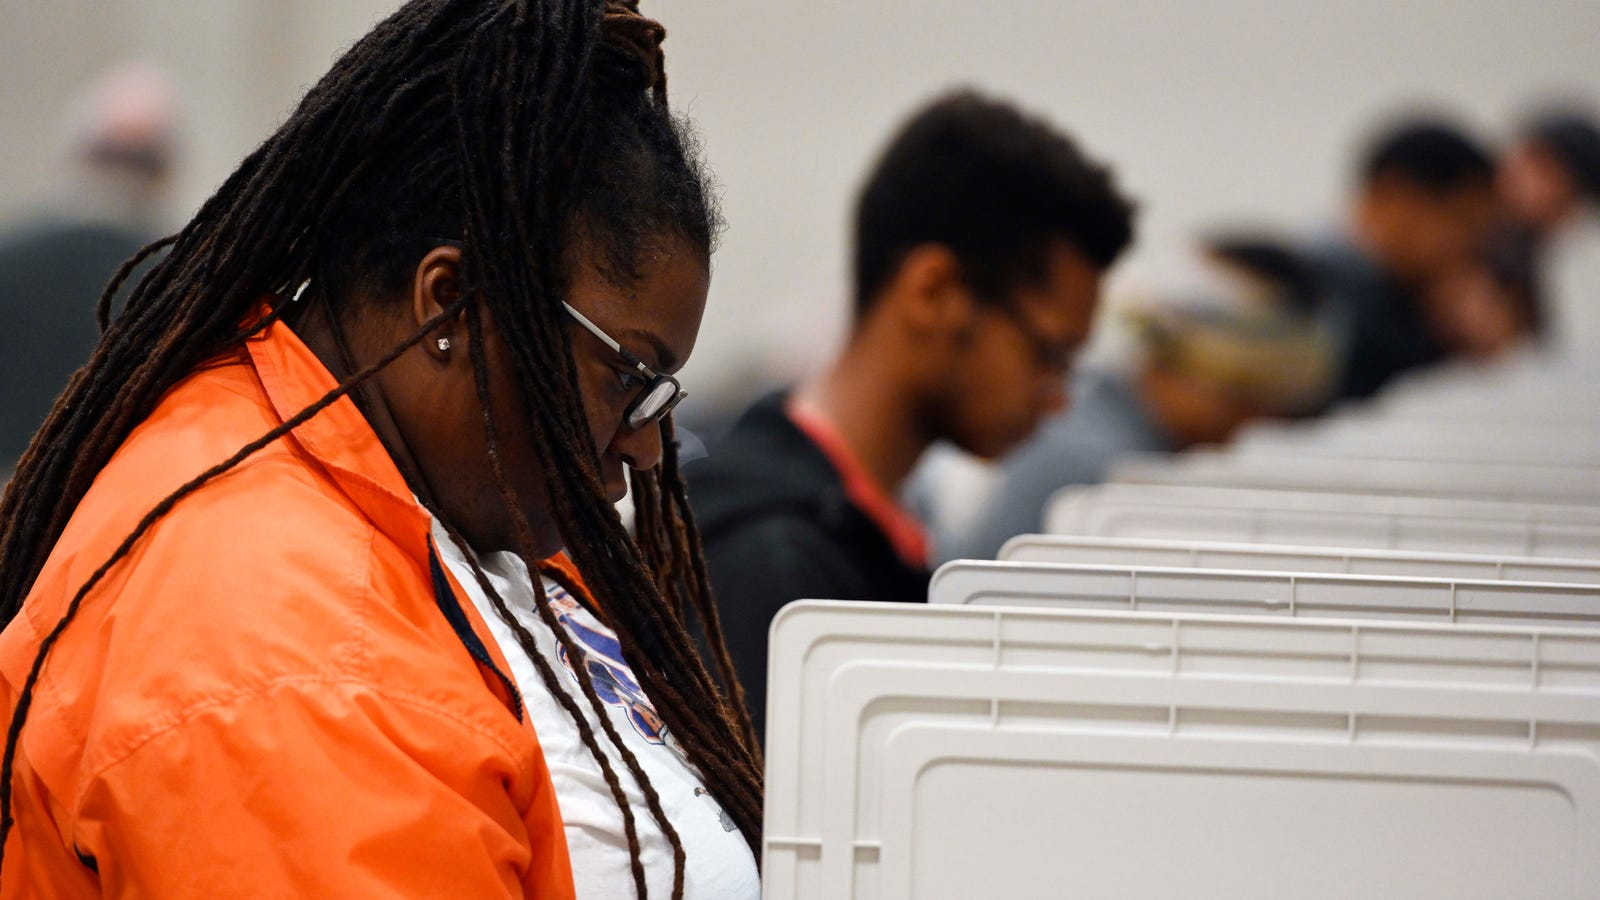 Exclusive: Thousands of Black Votes in Georgia Disappeared and No One Can Explain It